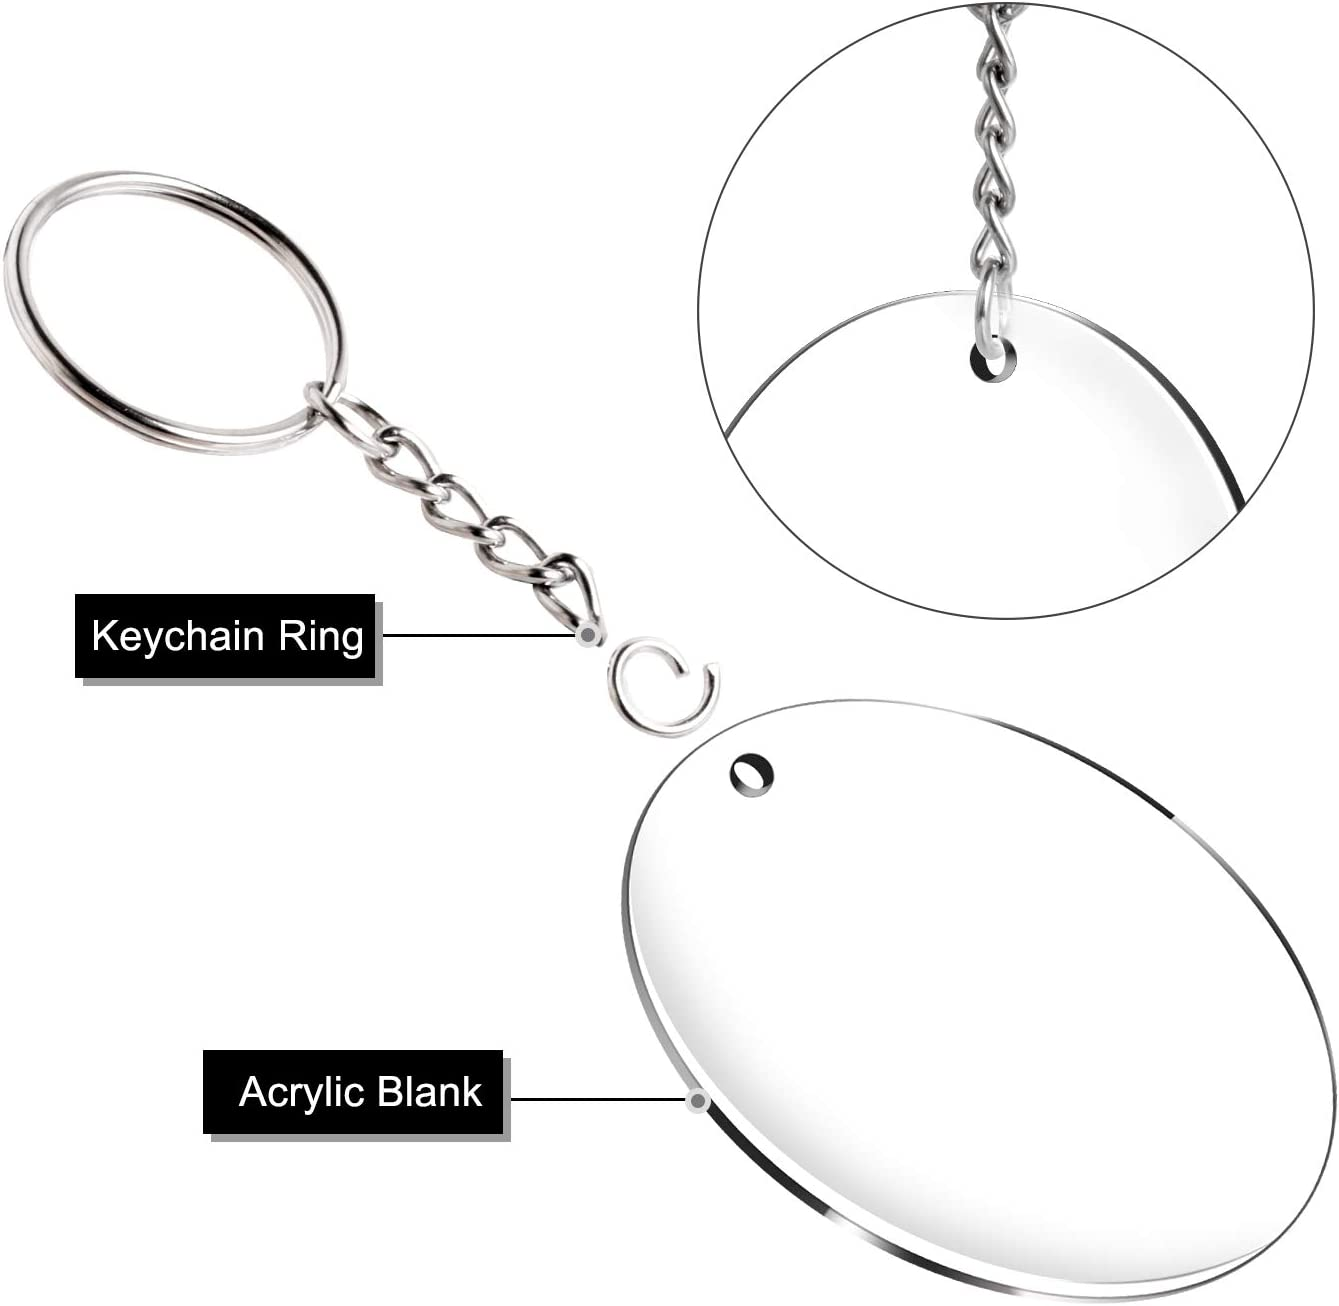 Acrylic Clear Keychain Blanks 60 Pcs 2 Inch Diameter Round Acrylic Discs Circles with Metal Split Key Chain Rings